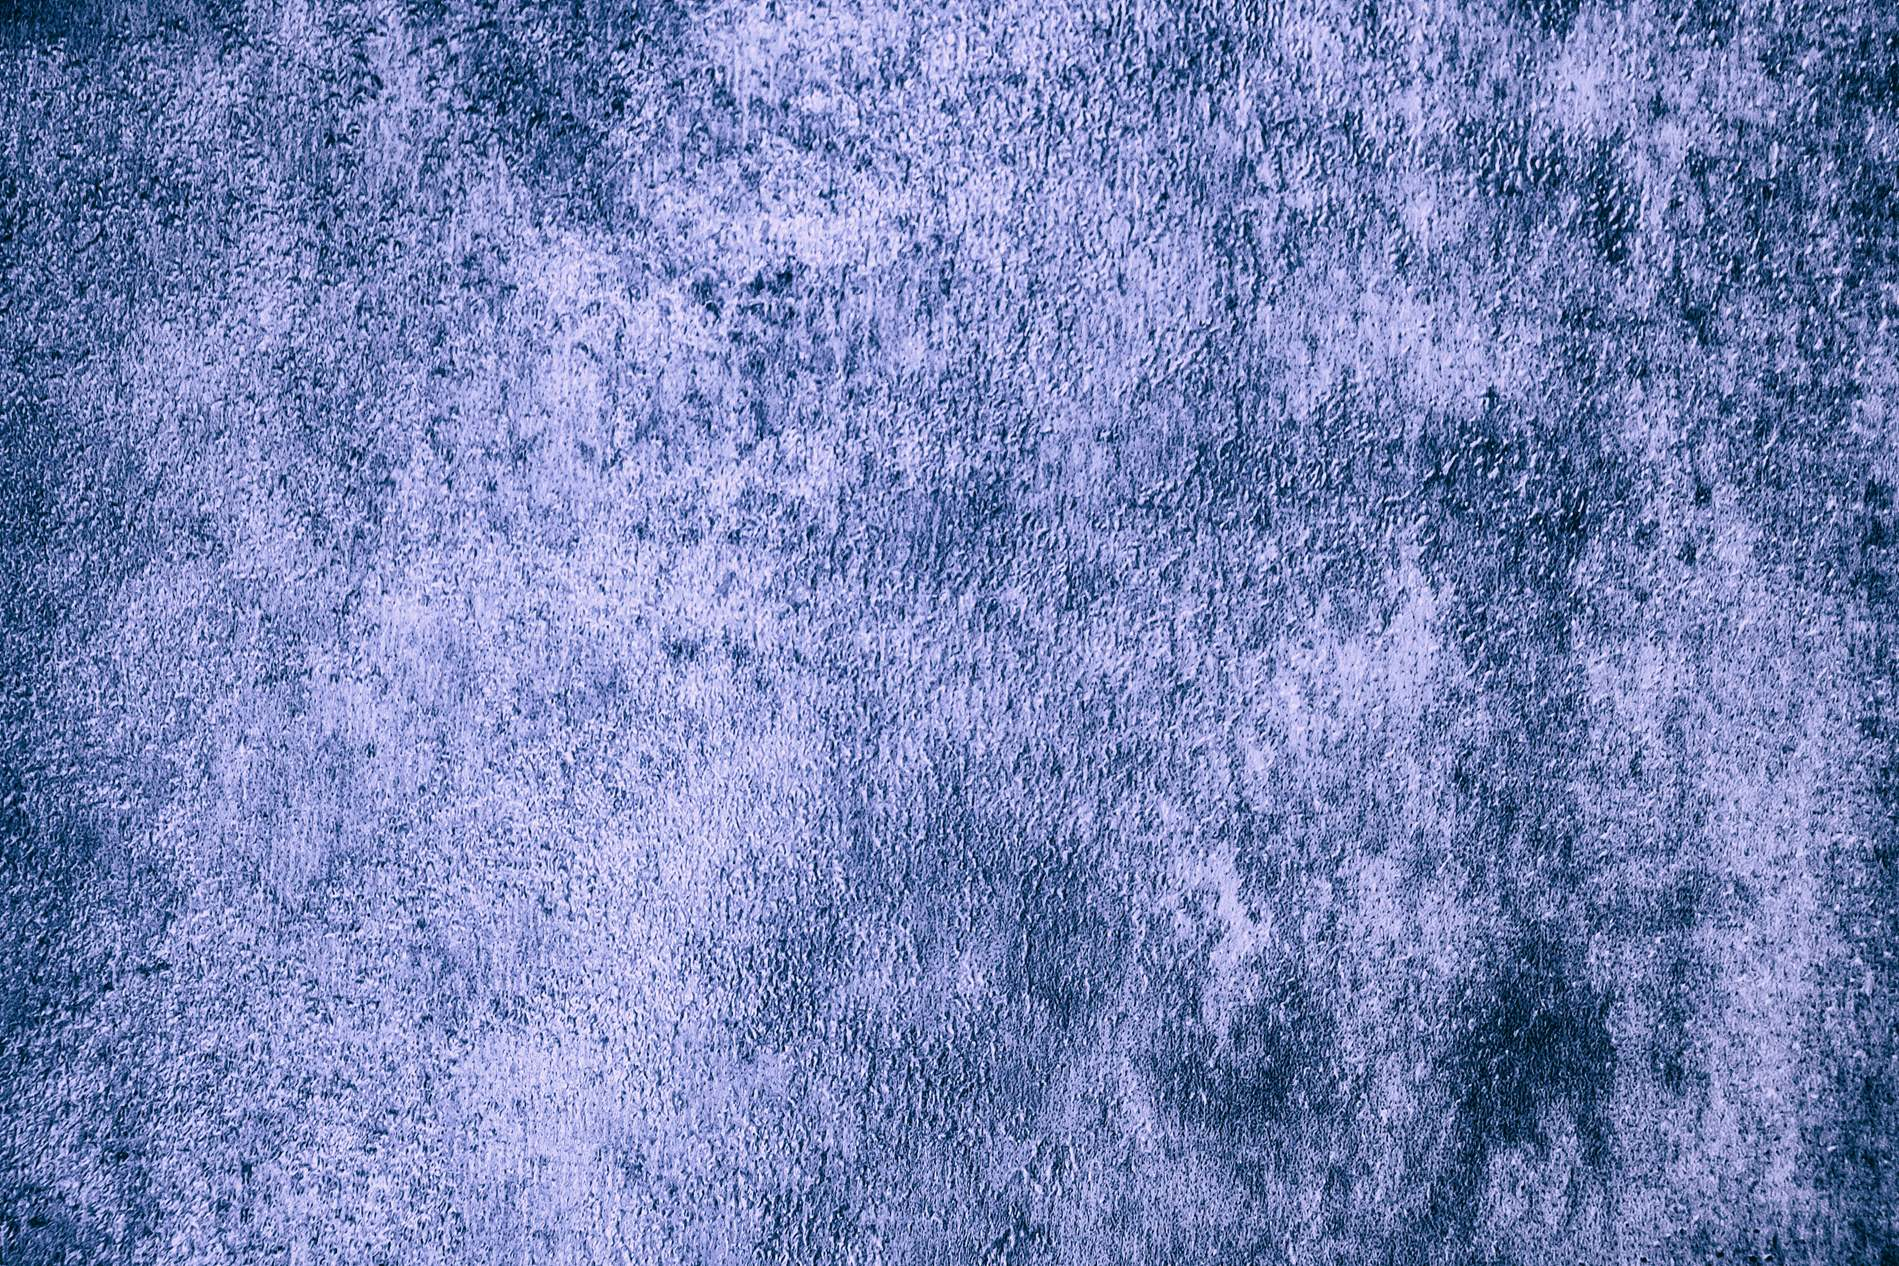 Dark Blue Grunge Background Texture - PhotoHDX